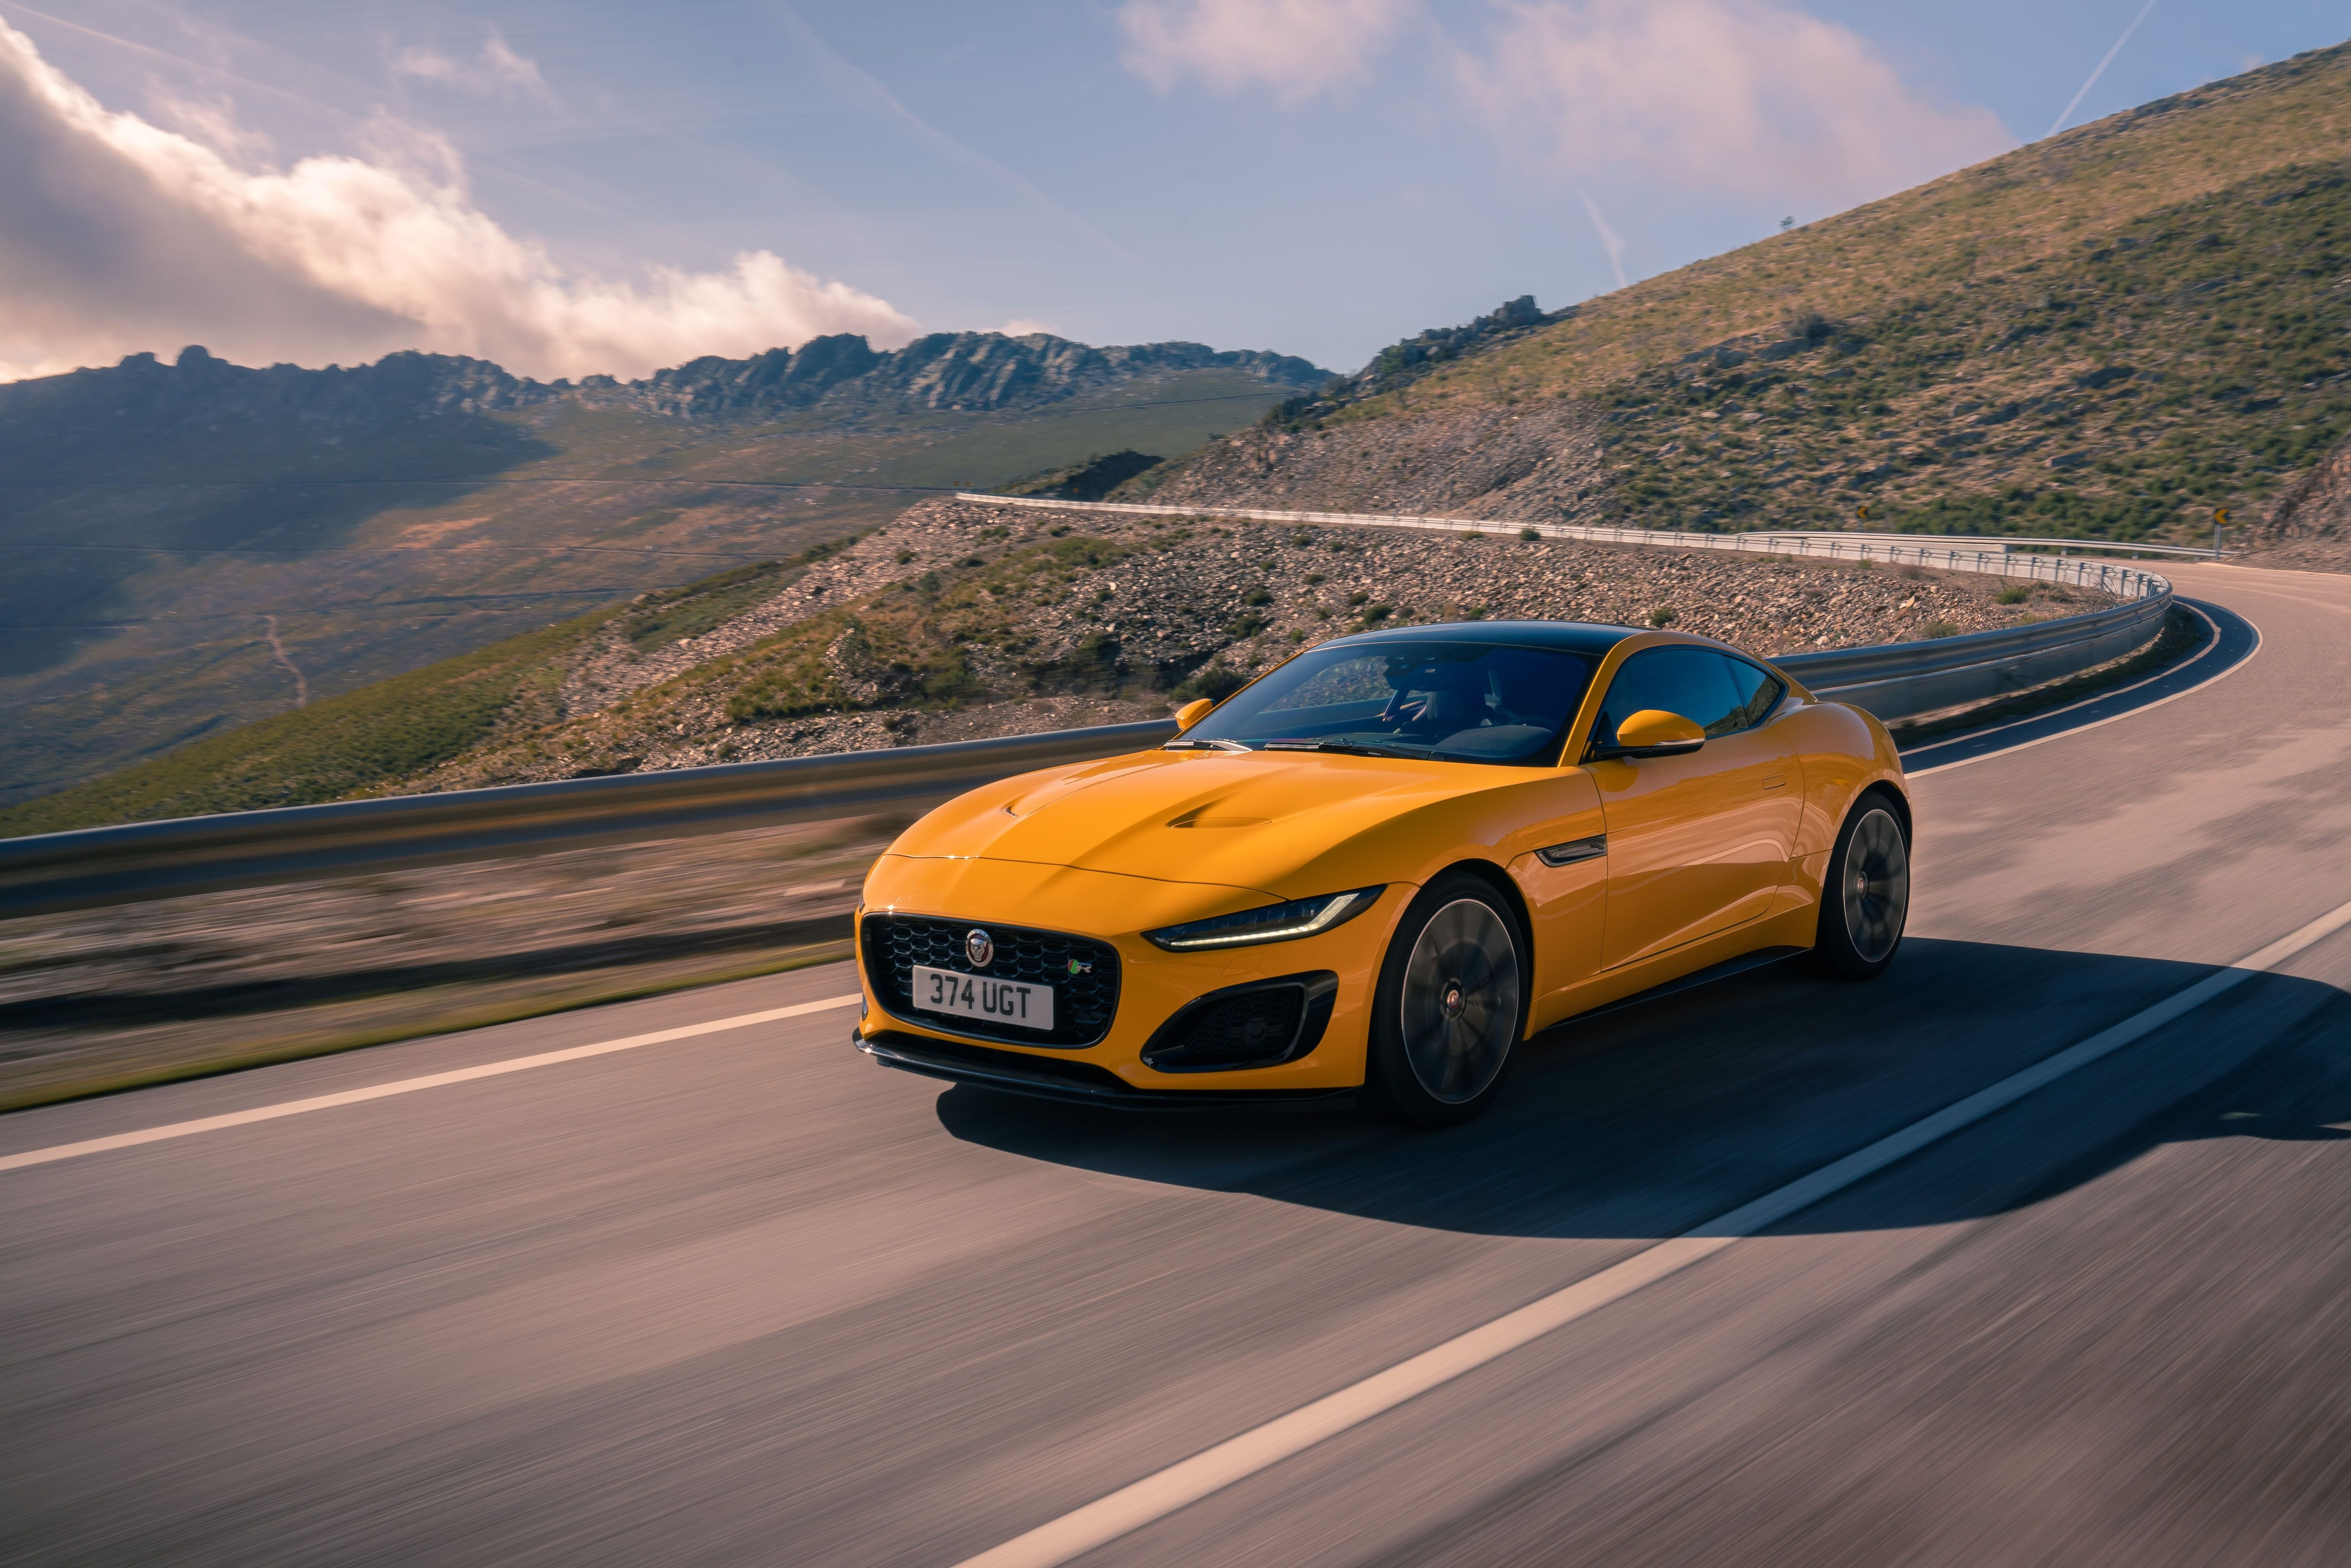 First Drive In The New 103 200 Jaguar F Type In 2020 Jaguar F Type Jaguar Sport Sports Cars Bugatti